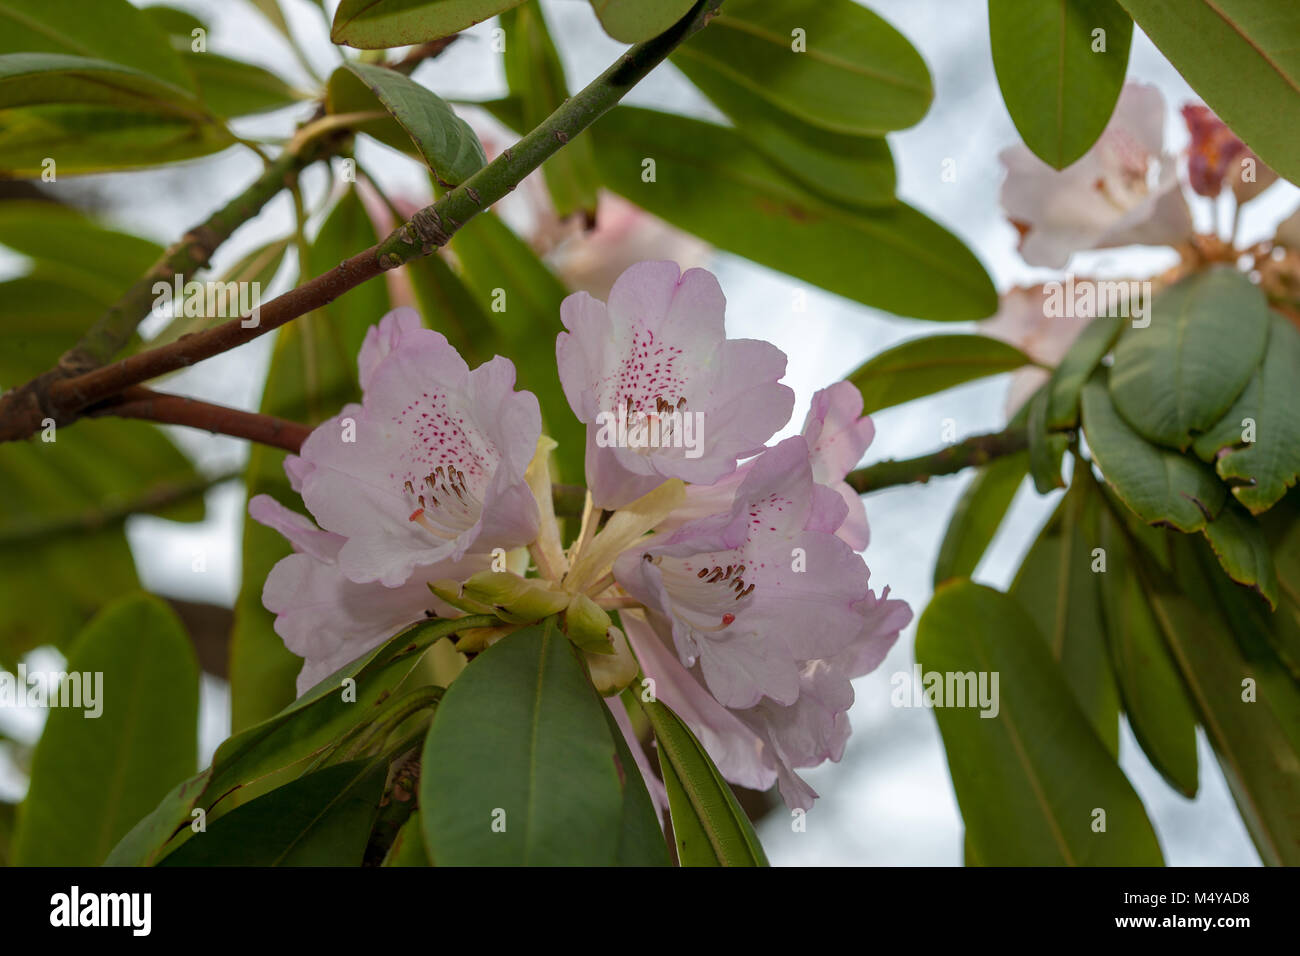 Rhododendron species, Rosettrododendron (Rhododendron hunnewellianum) - Stock Image